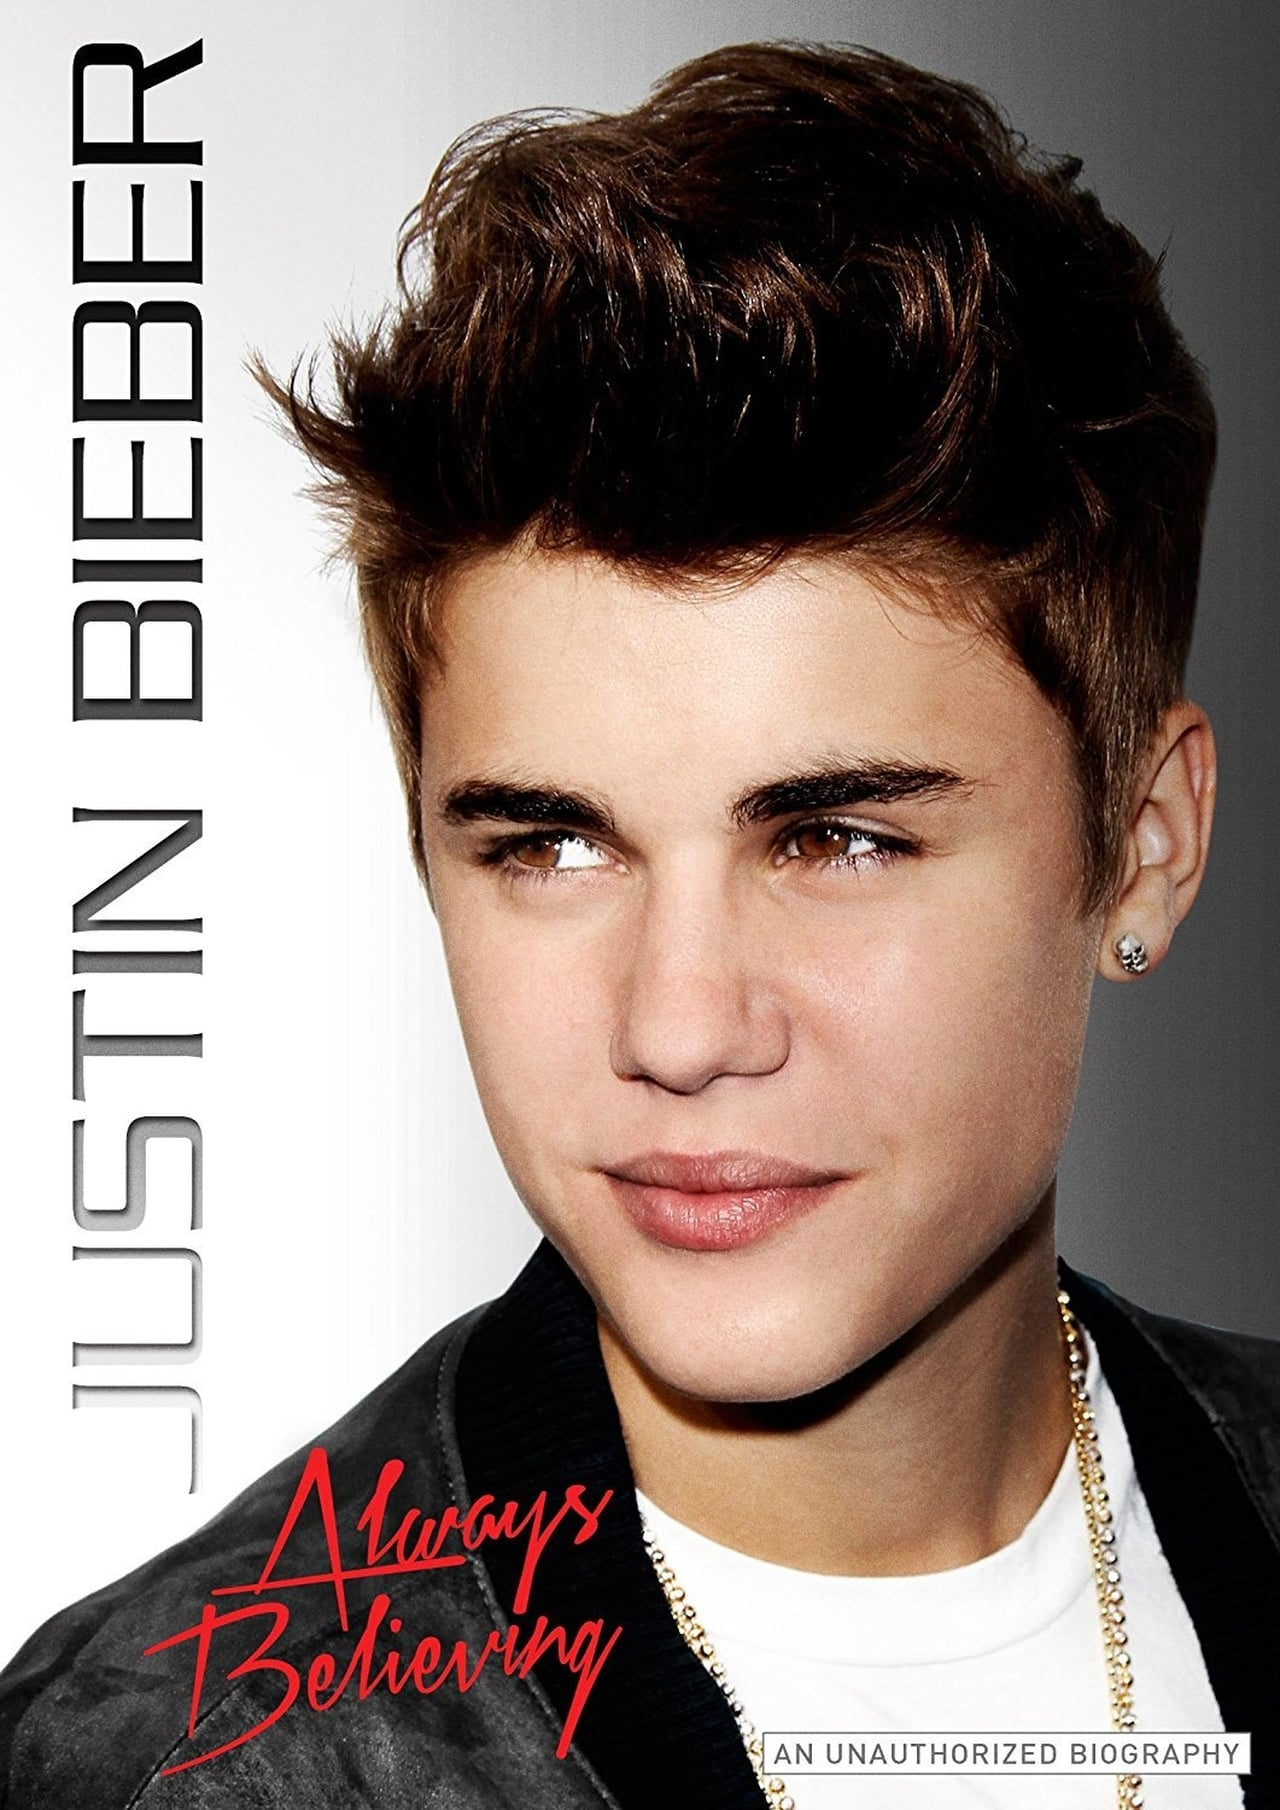 Justin Bieber: Always Believing